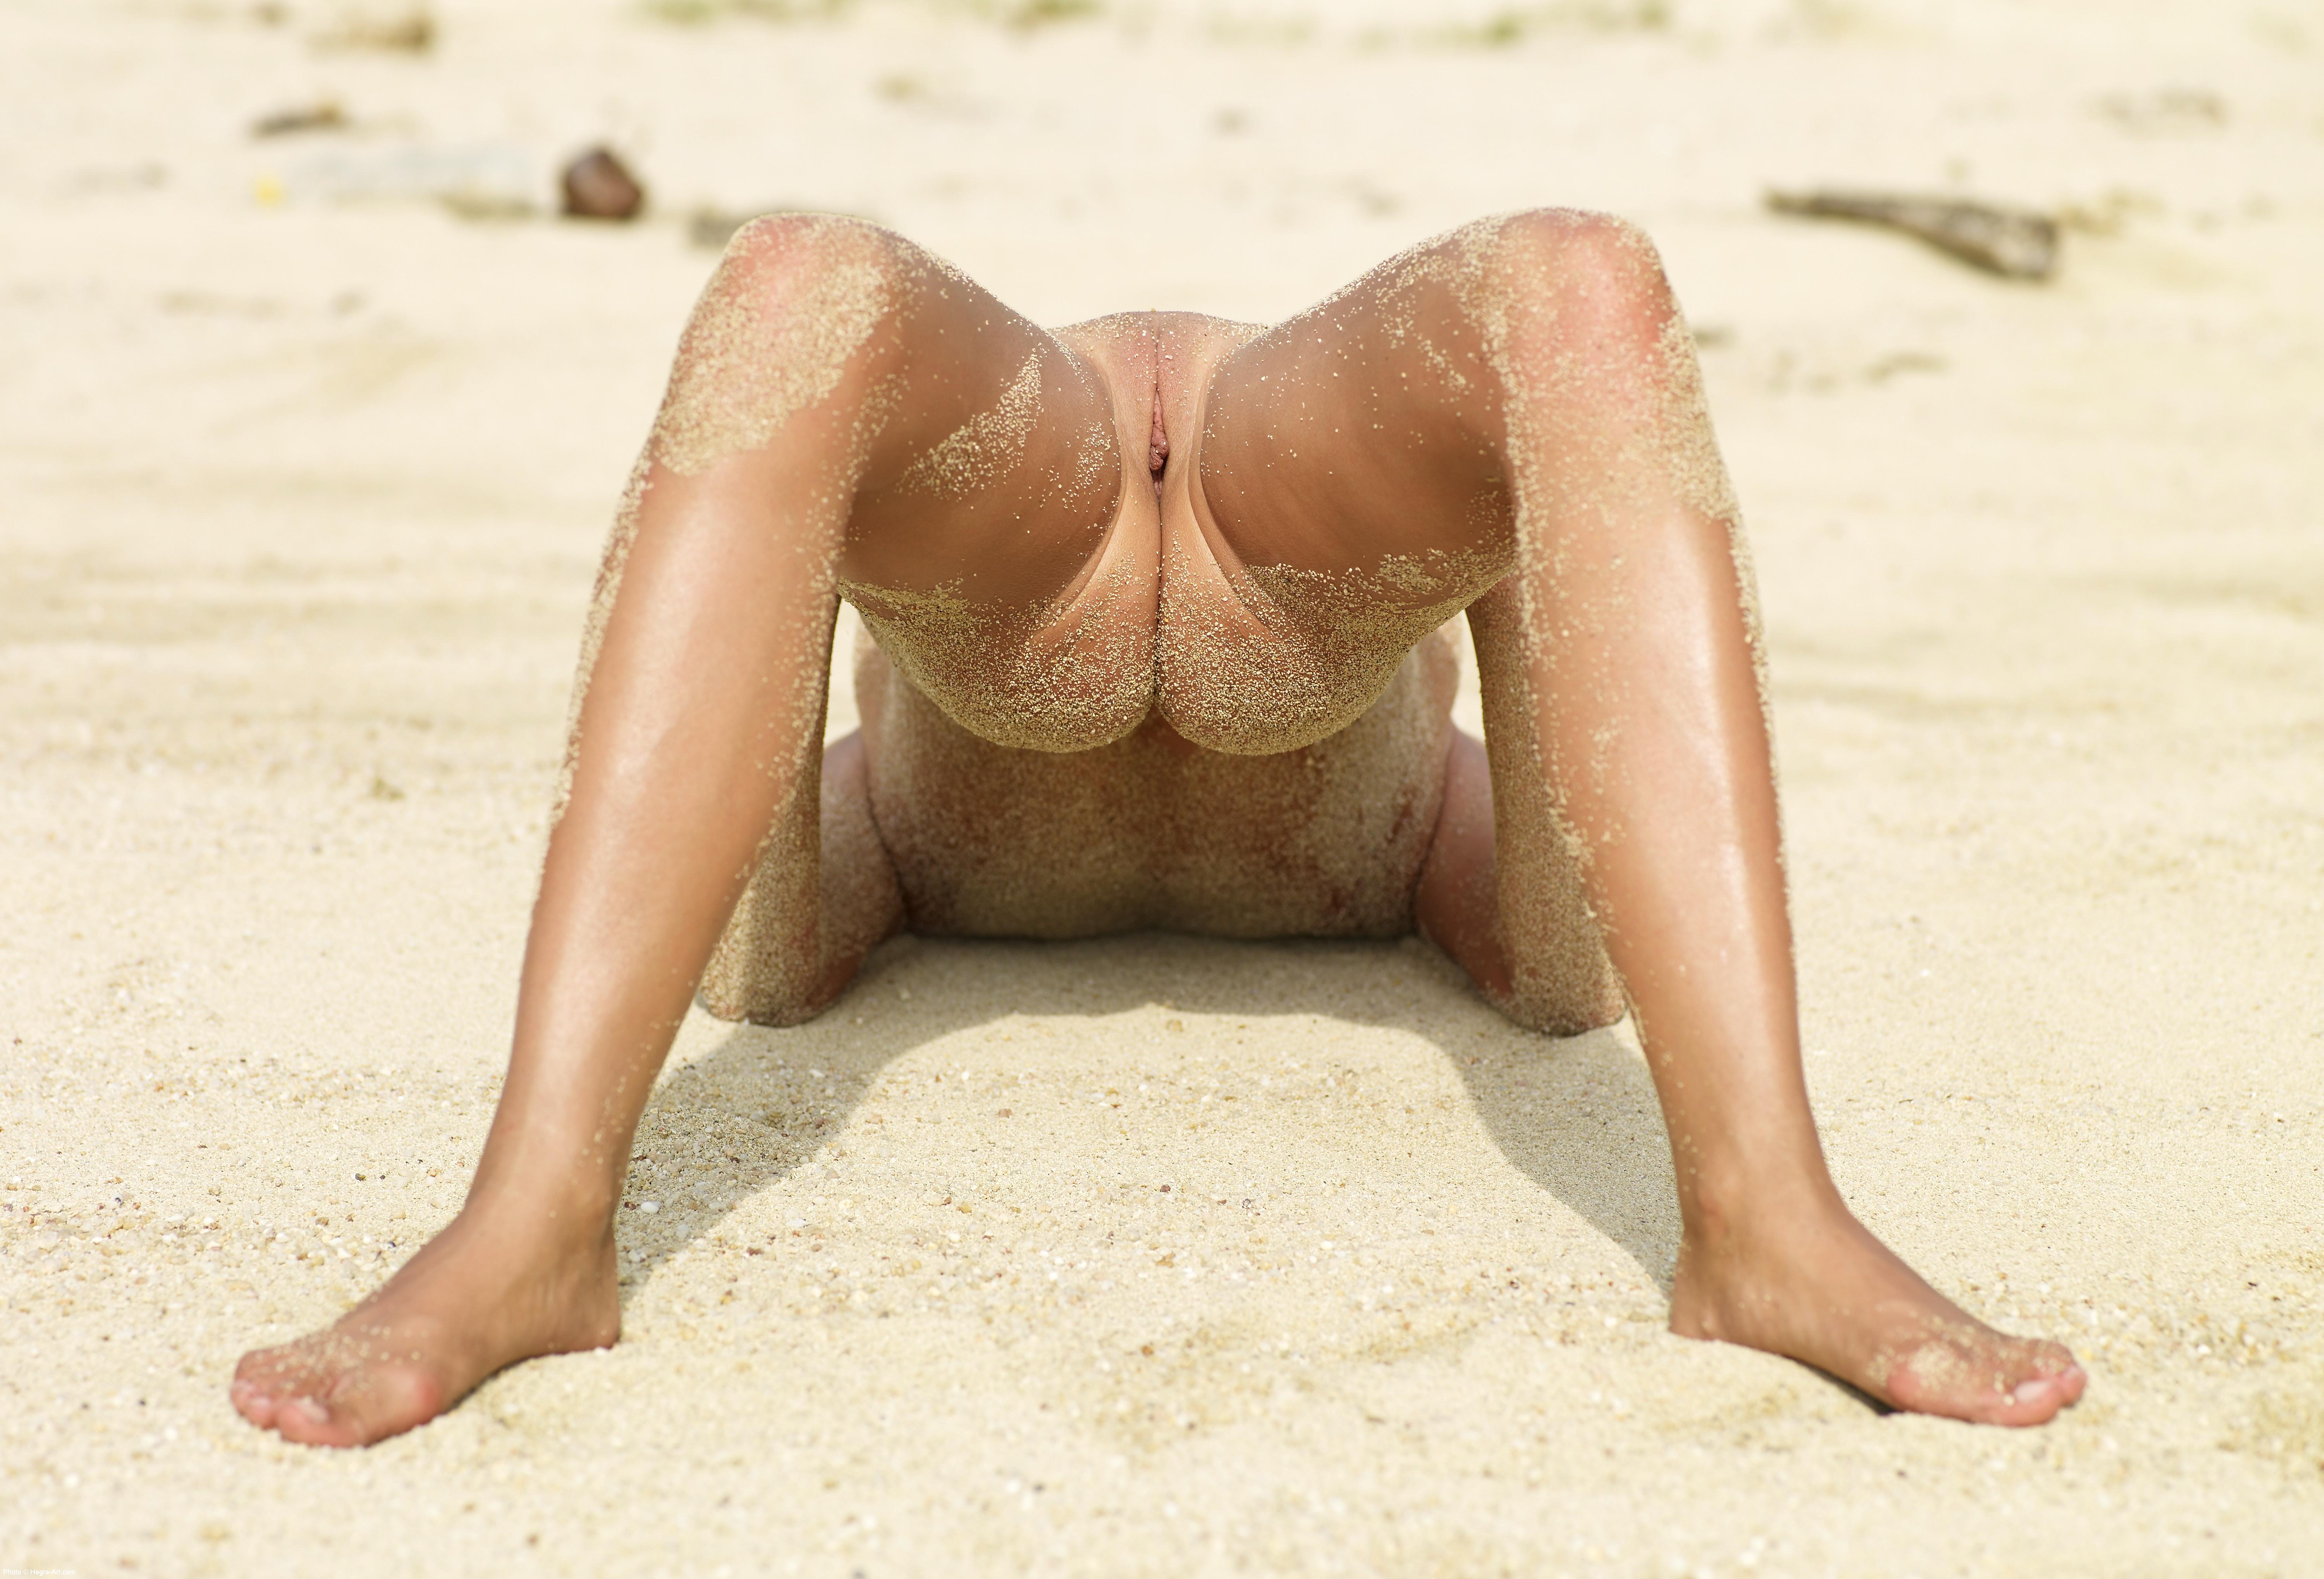 Very nudist beaches in thailand opinion you